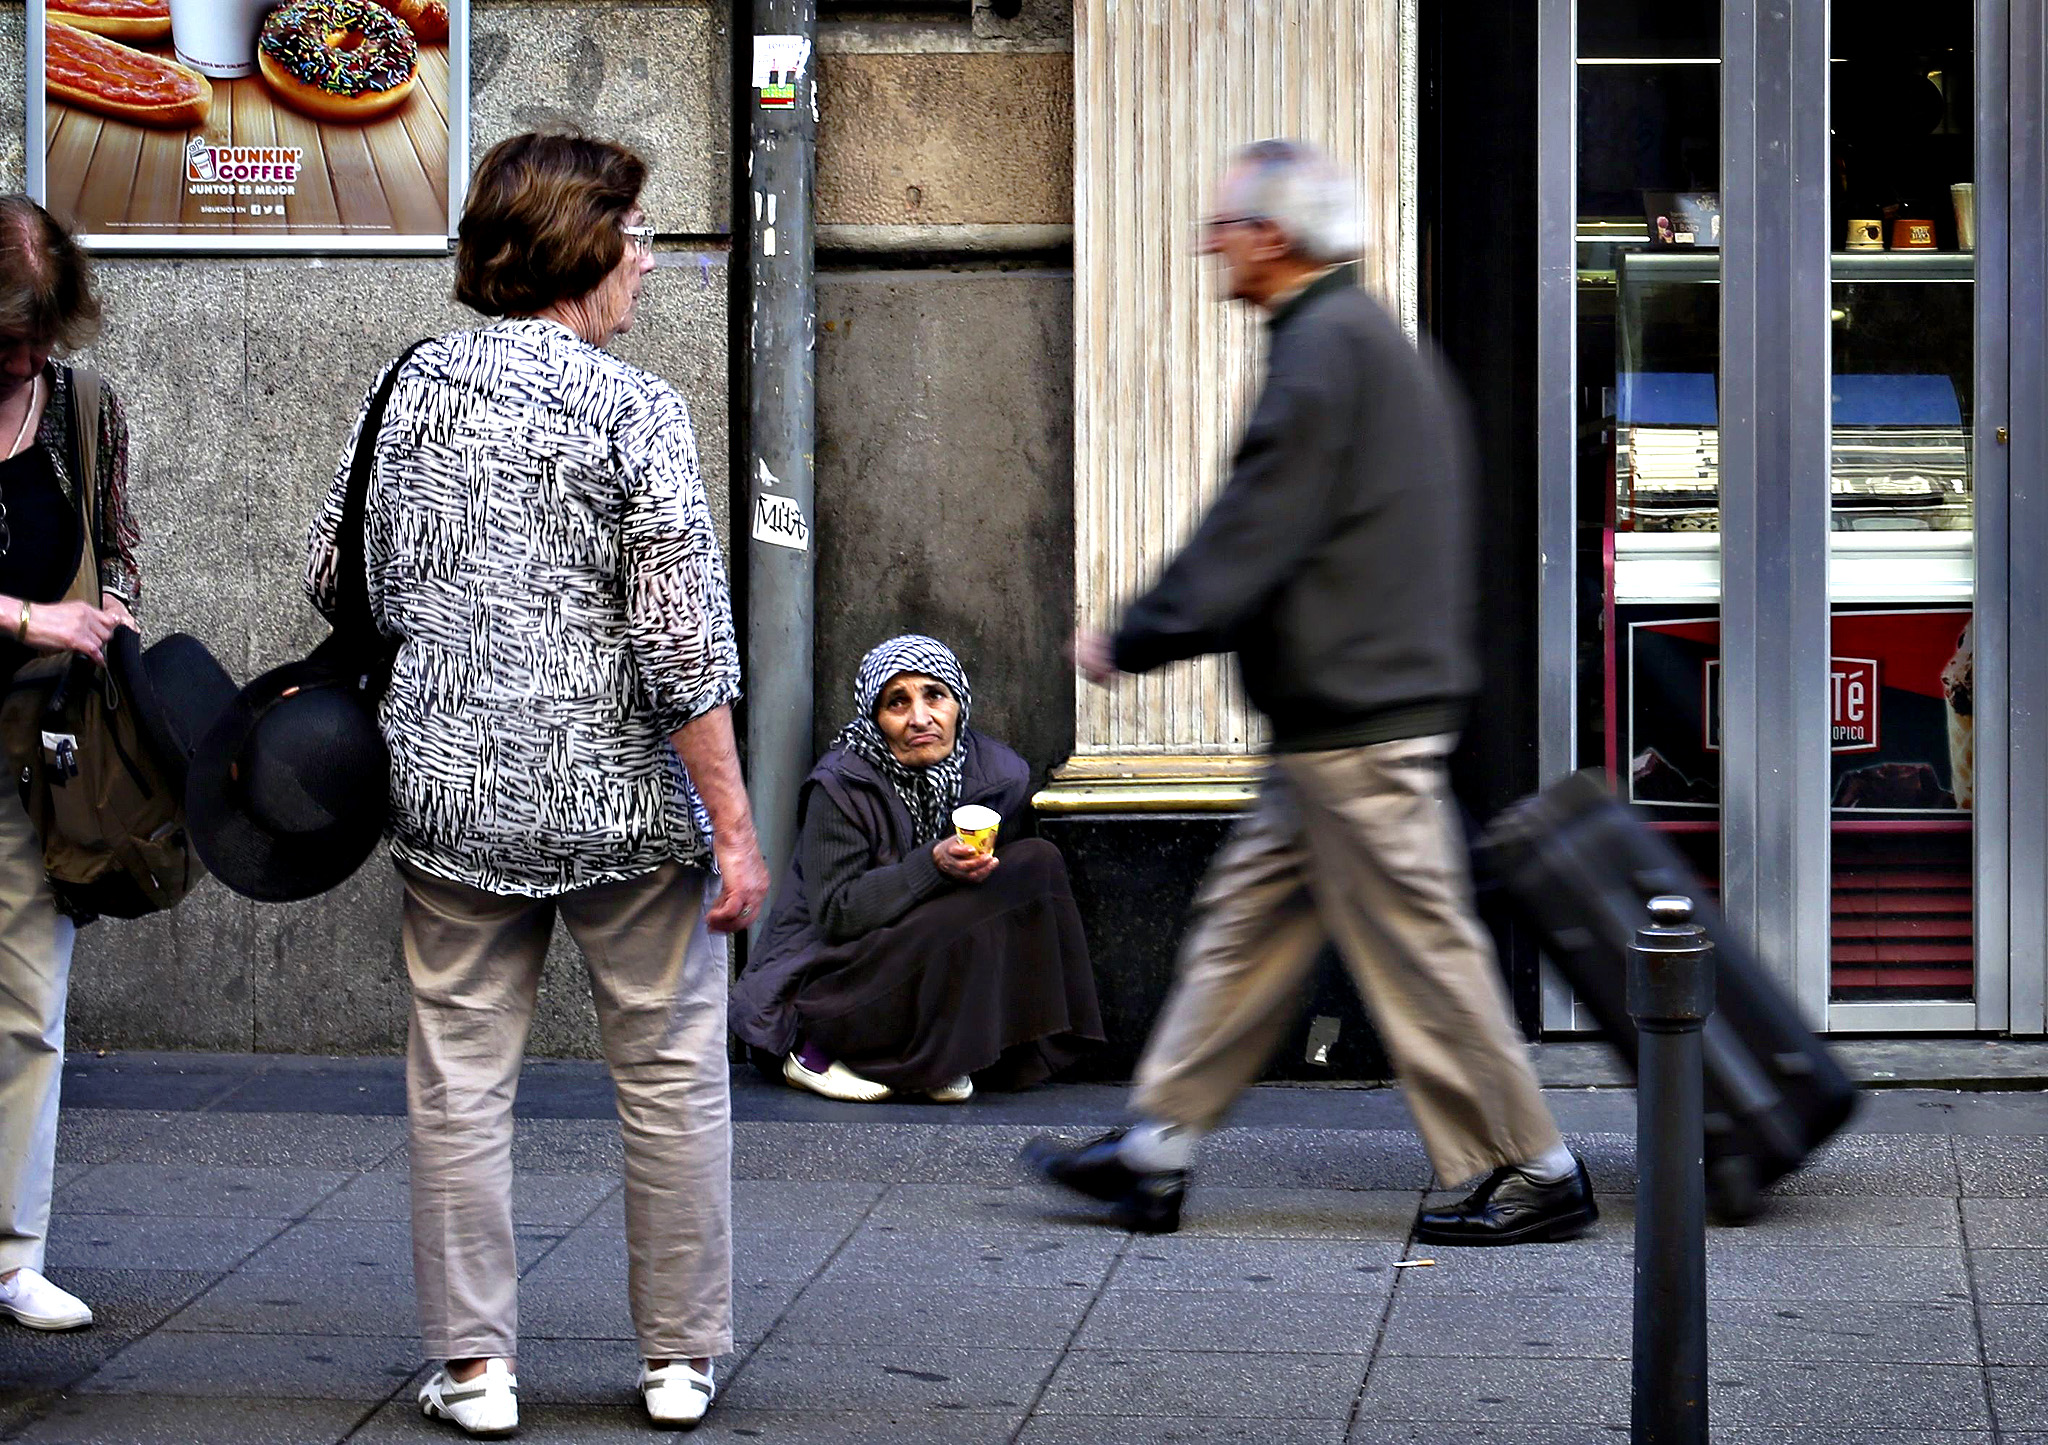 A beggar holds a plastic cup as people walk past in central Madrid, October 10, 2013. Beggars, dog-lovers and fortune-tellers who venture onto Madrid's busy streets may soon find themselves out of pocket as authorities in the city and elsewhere seek creative solutions to their financial problems.The Madrid council laid out plans this week to levy fines of 750 euros ($1,000) for public activities including soliciting for money outside shopping centres, feeding or washing dogs, reading tarot cards and performing acrobatics with a bike. Saddled with huge debts since a property bubble burst in 2008, Spain's autonomous regions and town halls have seen core revenues fall as unemployment holds stubbornly above 25 percent and corporate investments dry up. Many owe millions to service suppliers and staff.